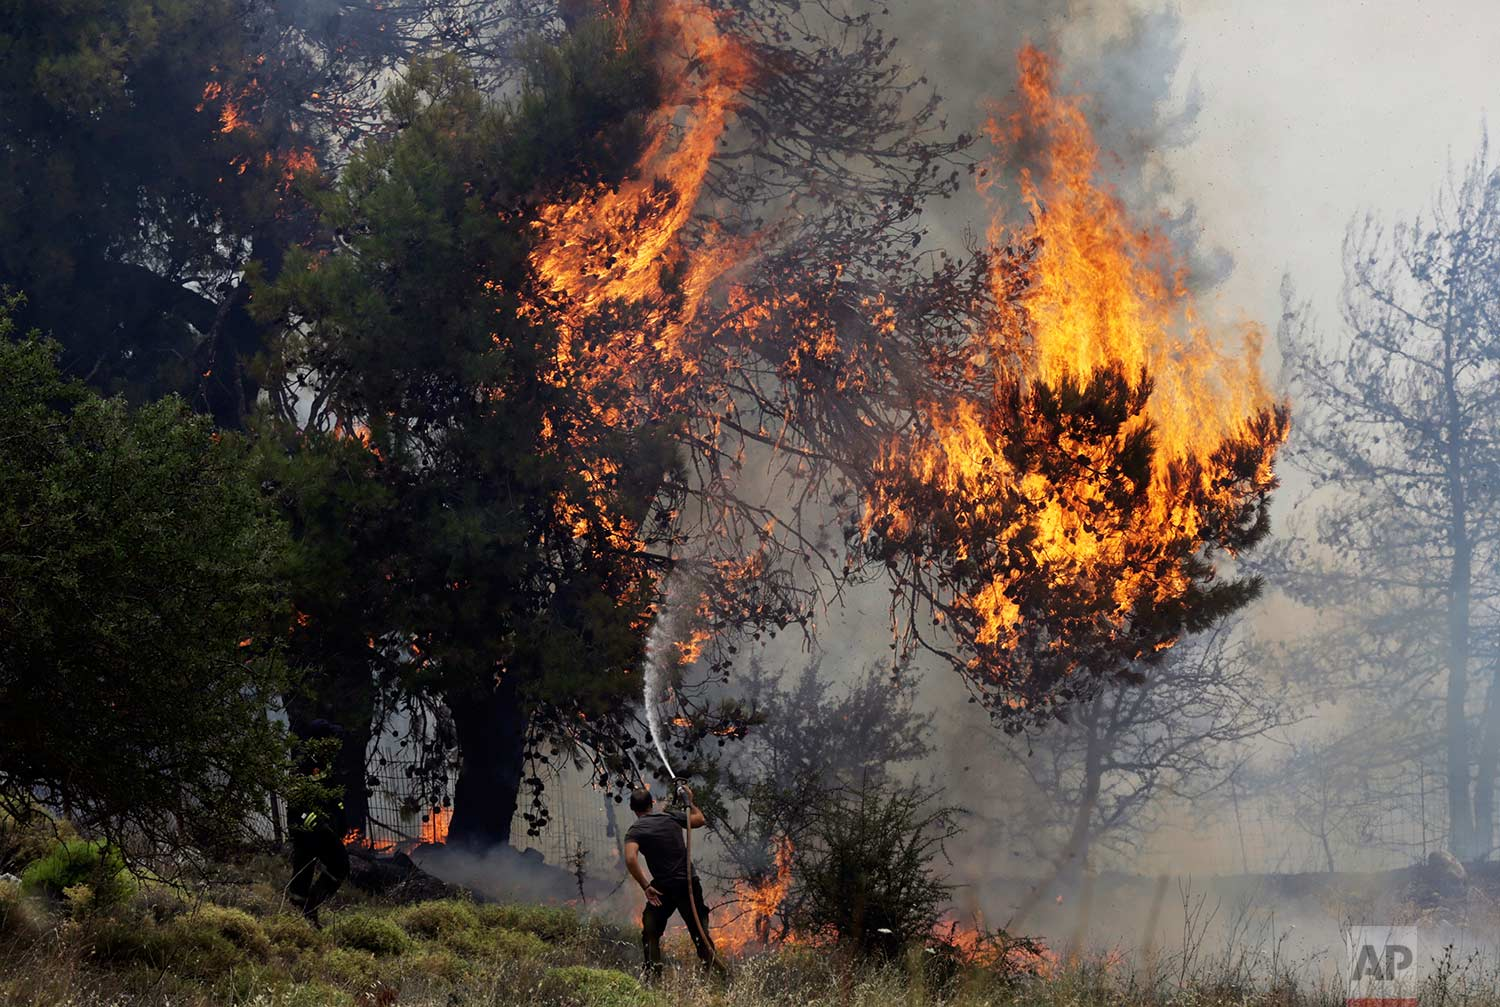 A volunteer tries to extinguish burning trees during a forest fire near Kapandriti, Greece, north of Athens, Tuesday, Aug. 15, 2017.(AP Photo/Ioanna Spanou)